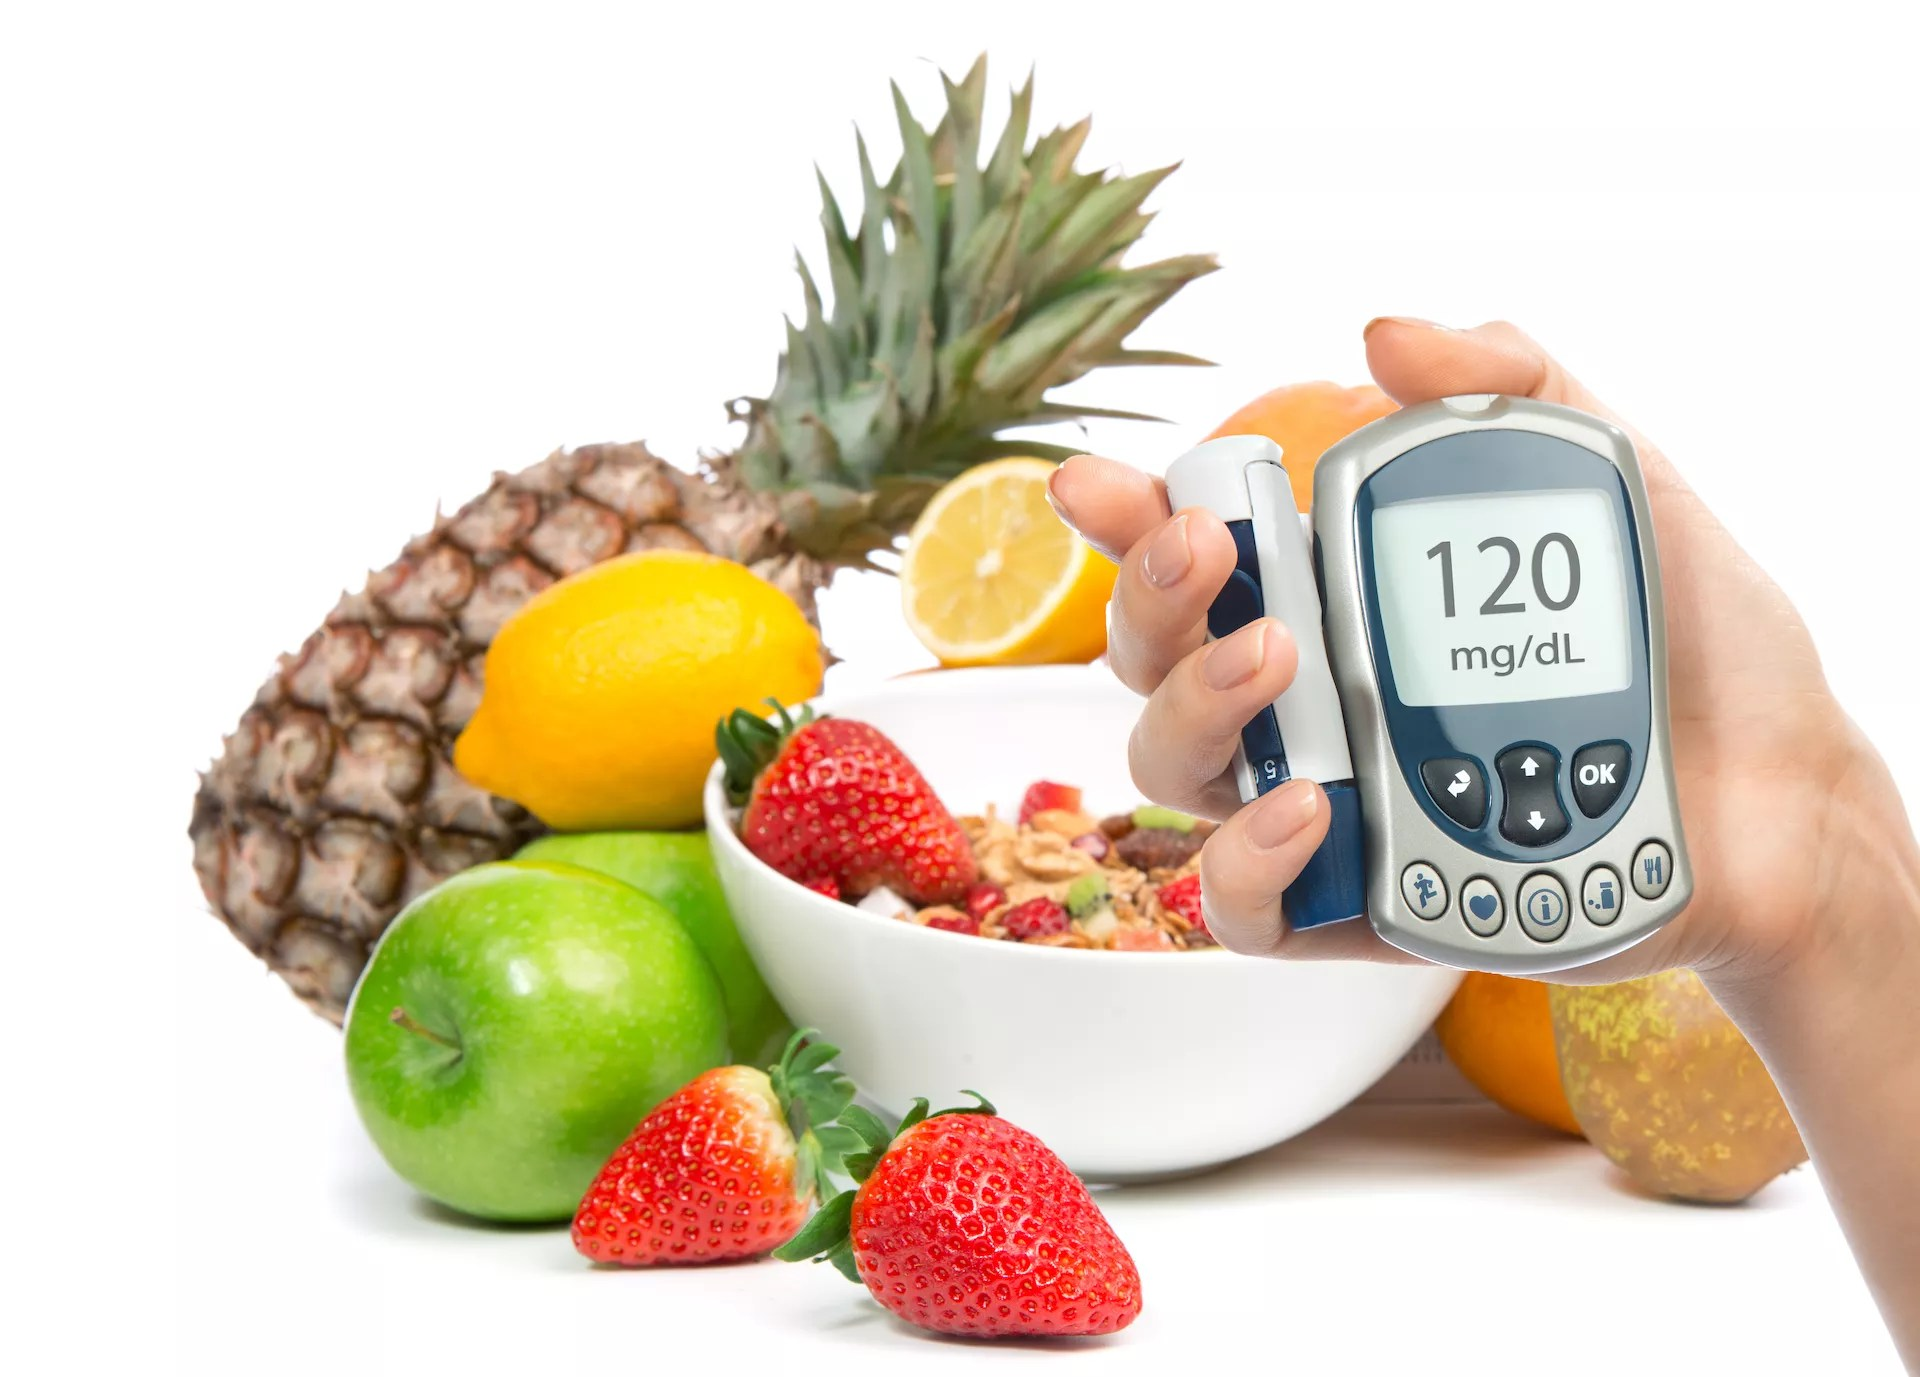 Diabetes Nutrition For Type 2 Diabetes New Report Finds Plant Based Diets More